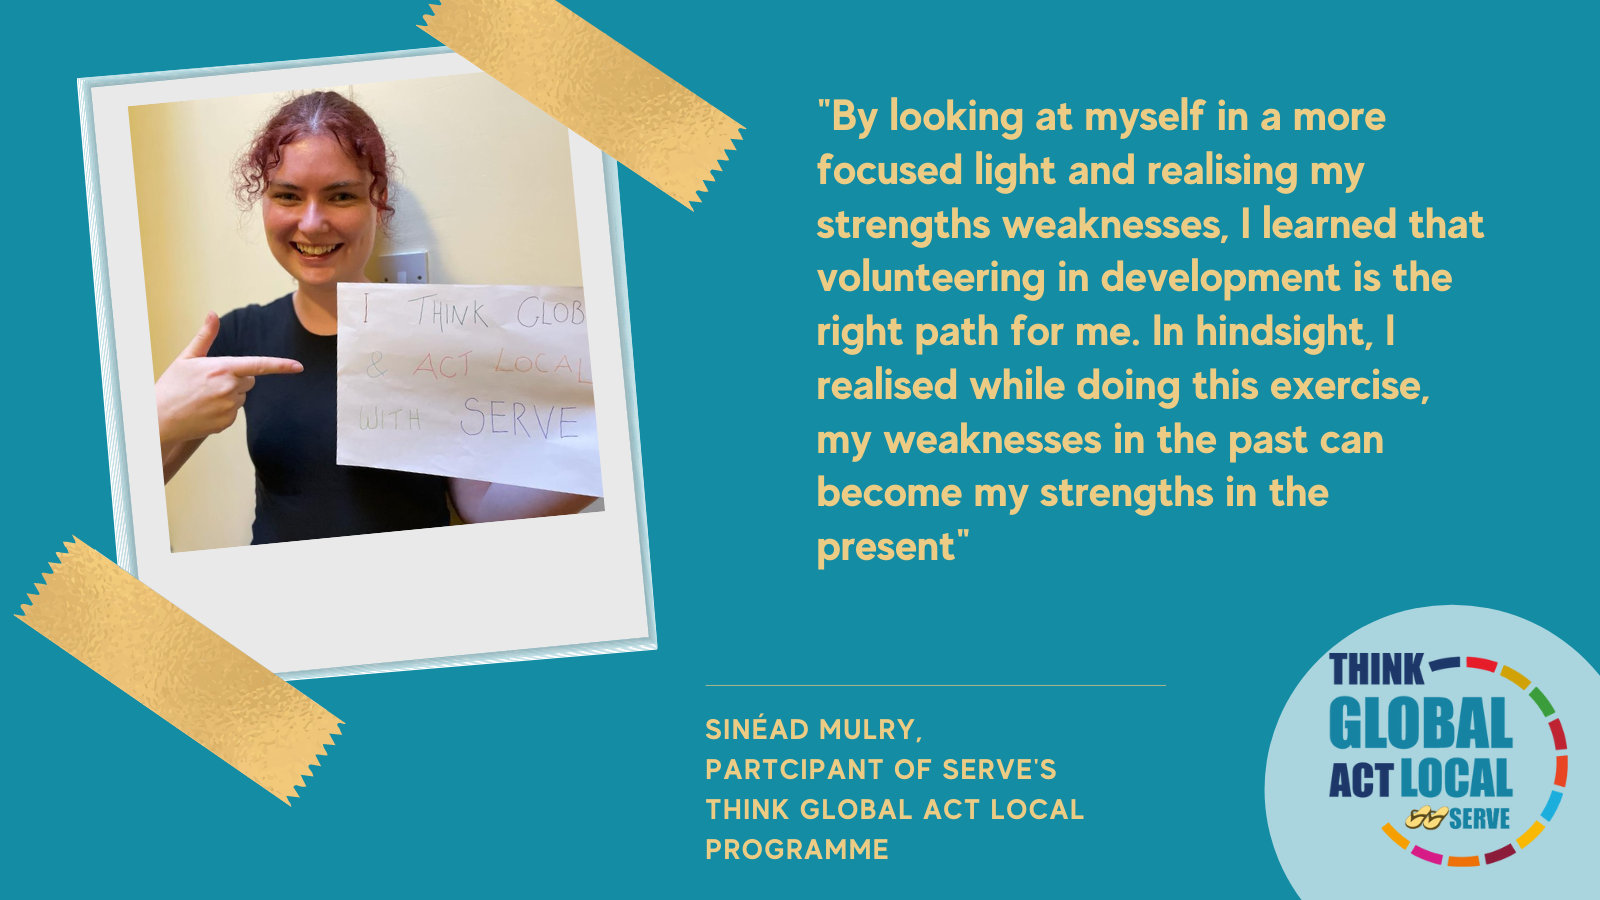 Think Global Act Local Programme Reflection